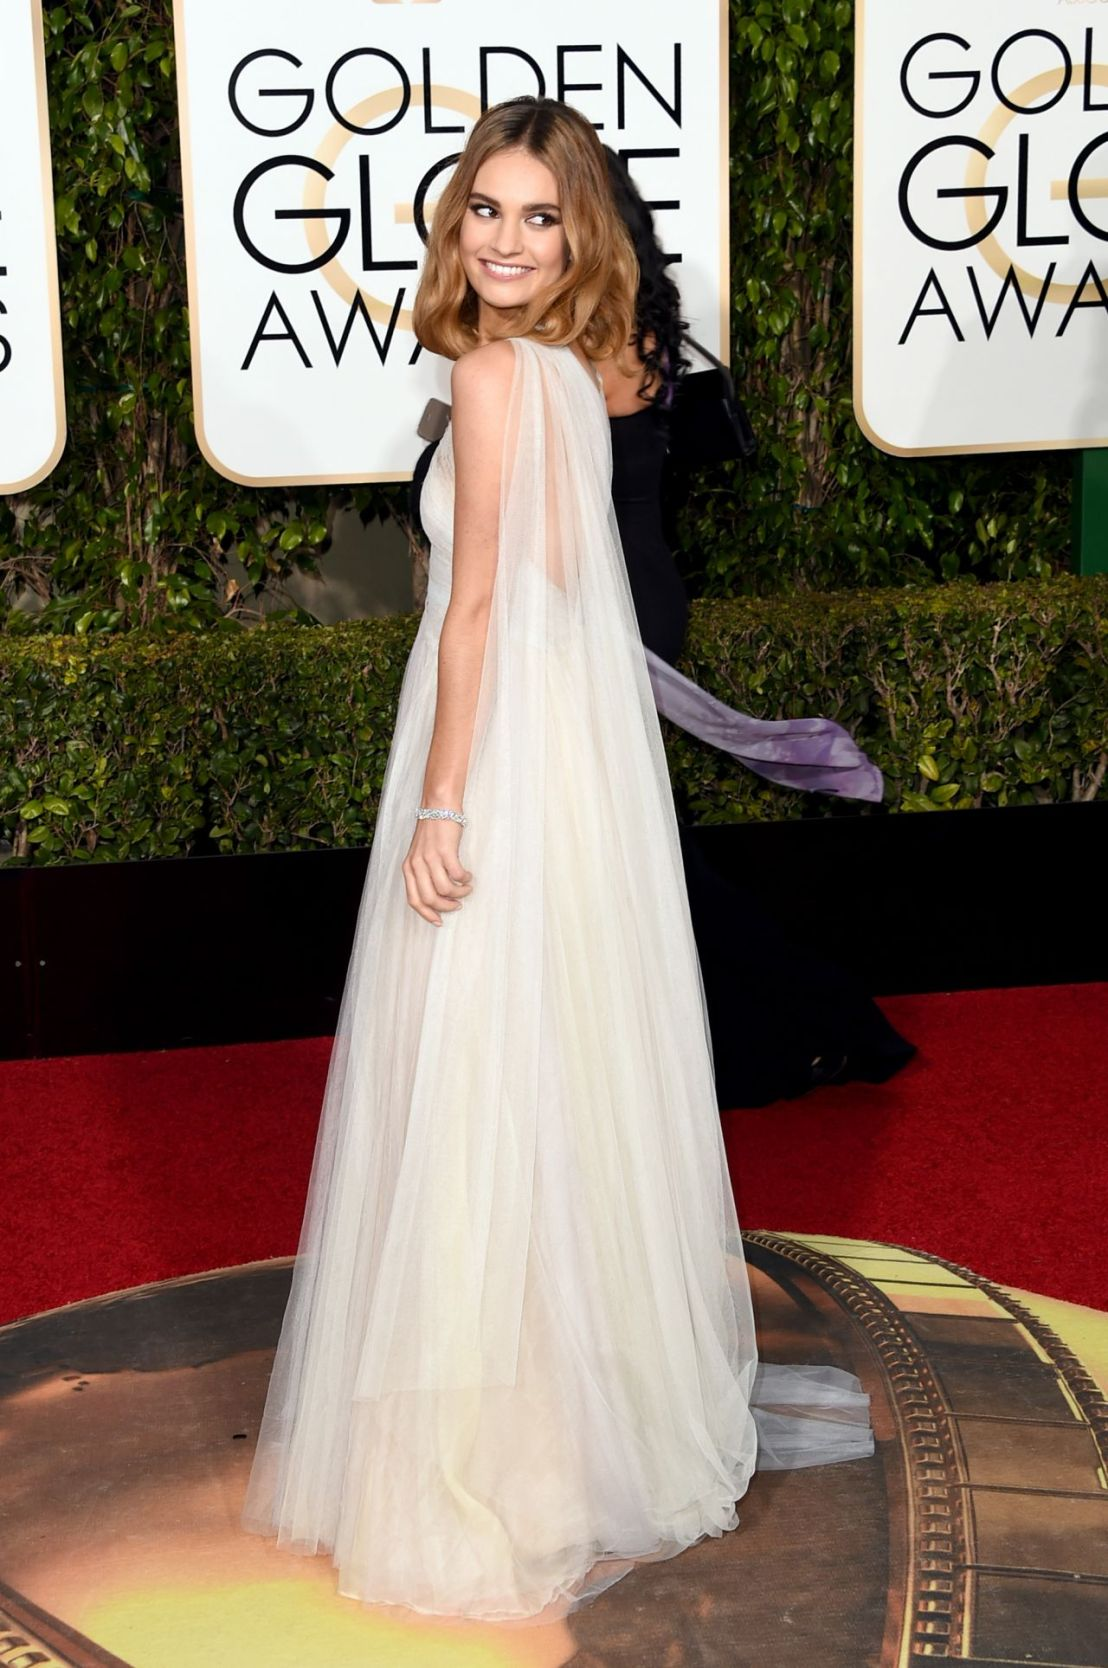 lily-james-2016-golden-globe-awards-in-beverly-hills-2.jpg